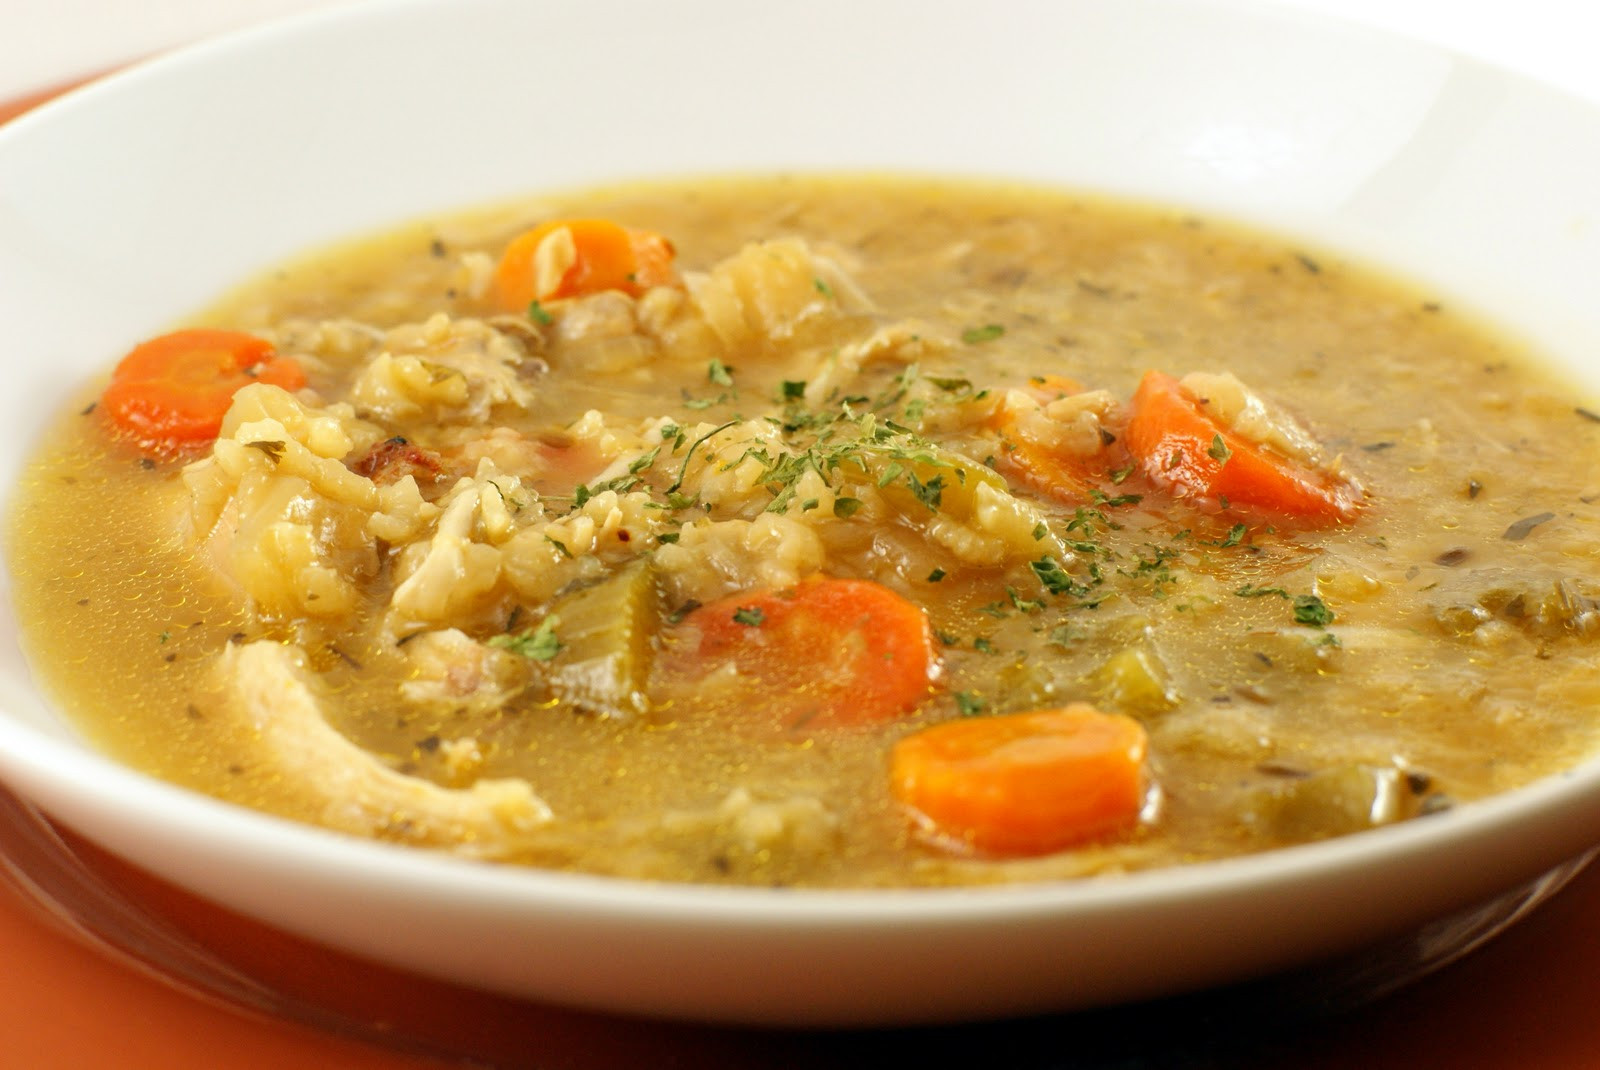 Chicken Soup With Rice  Spicy Chicken and Rice Soup Living FODMAP Free